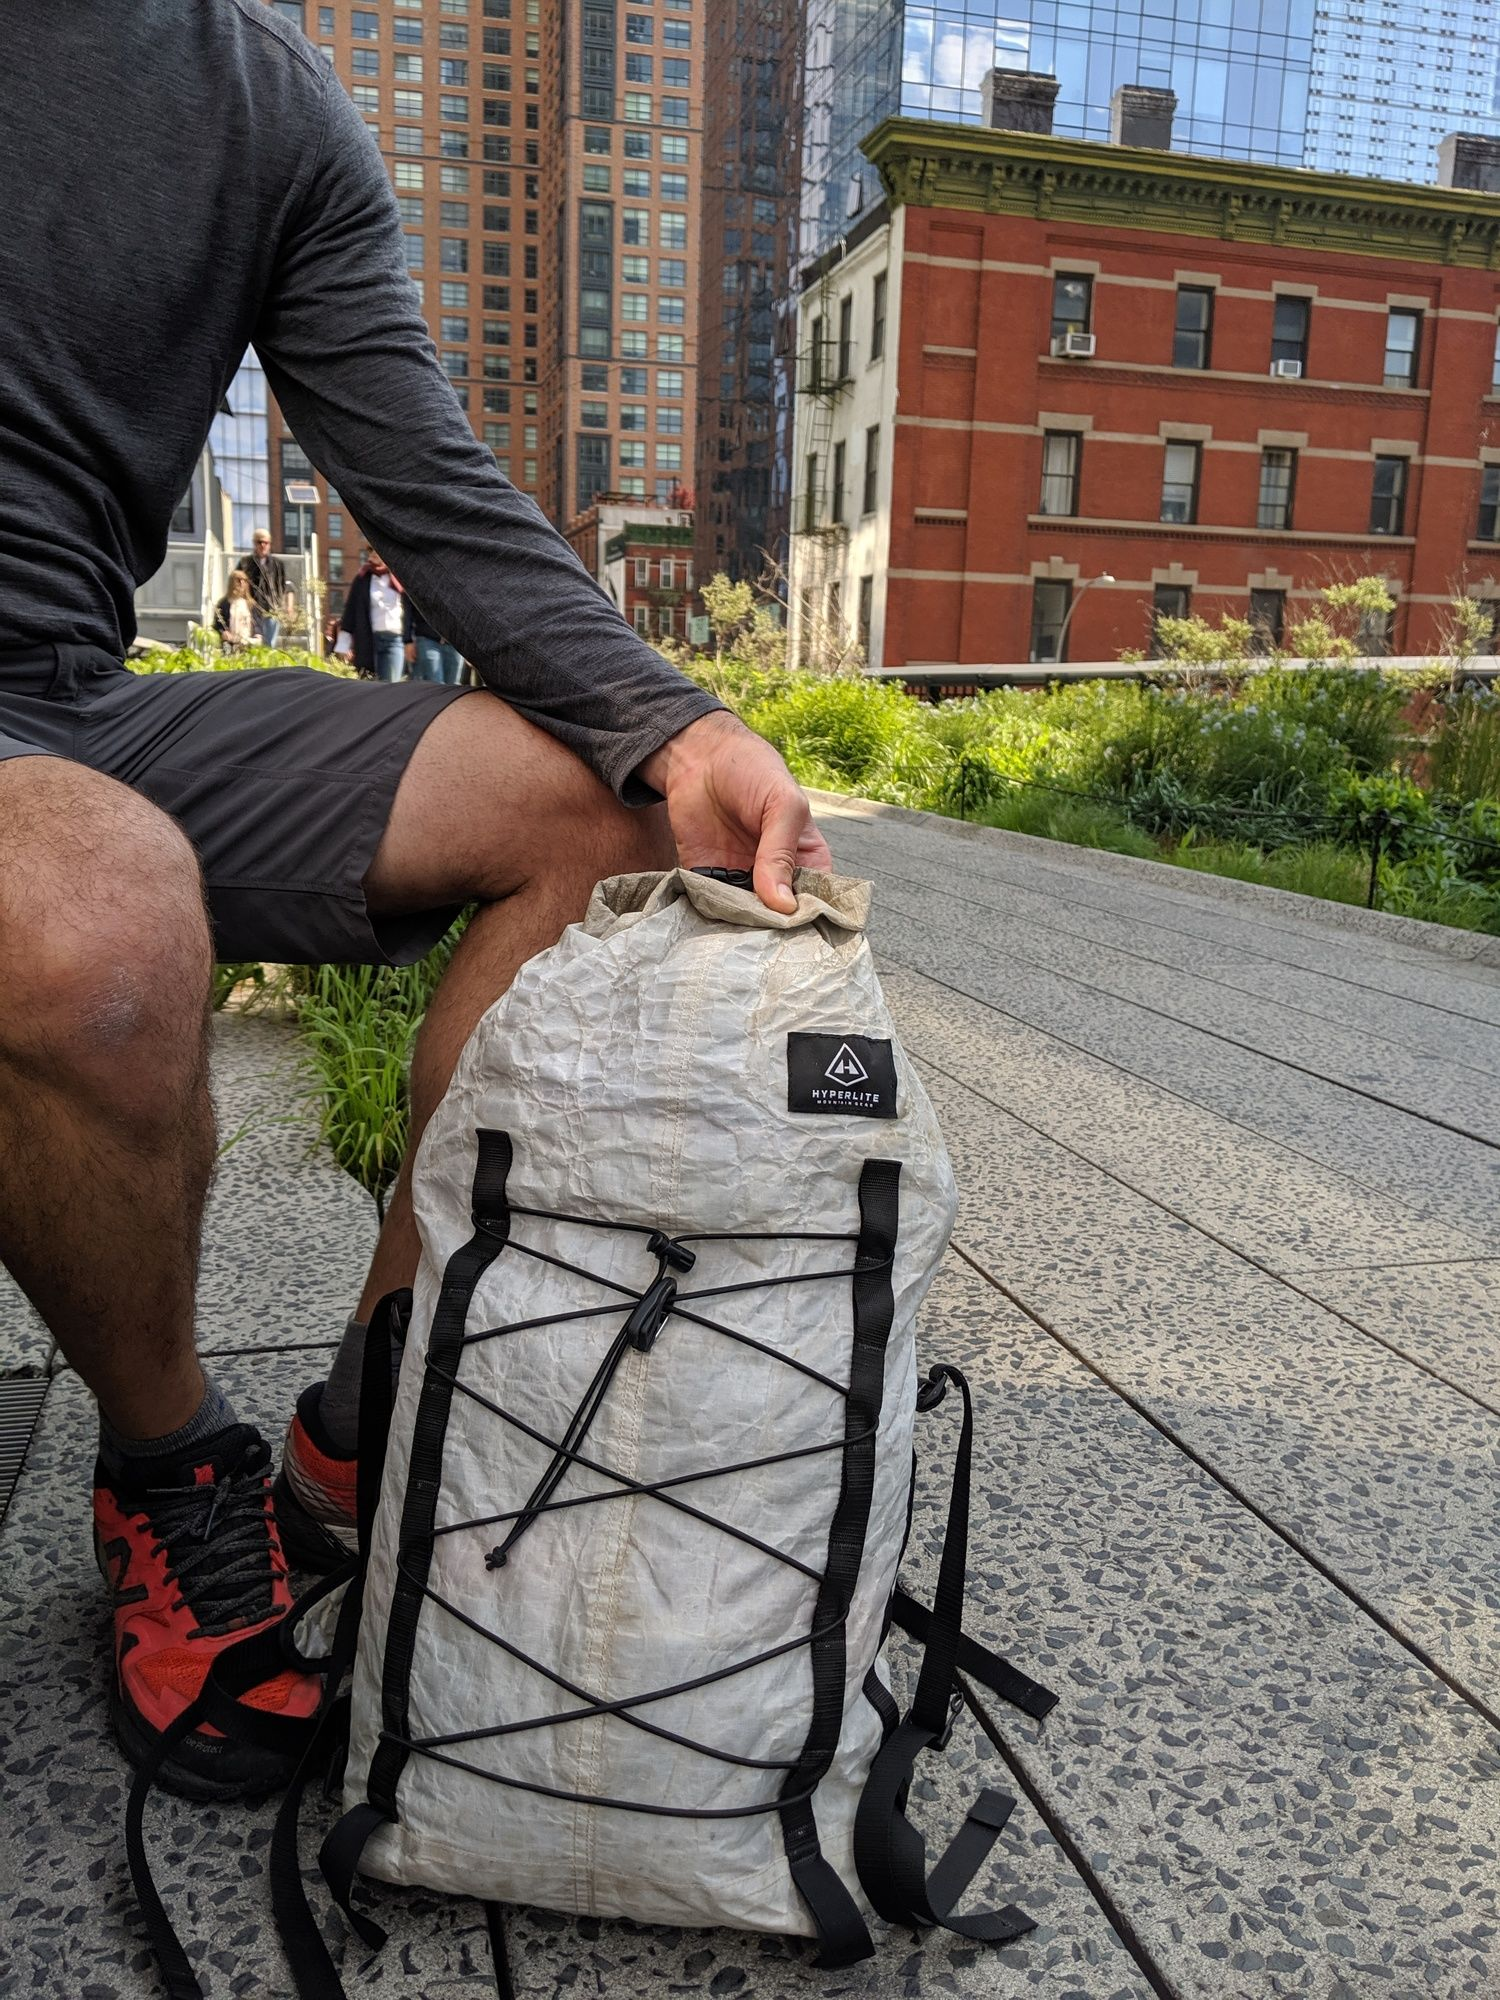 The   Hyperlite Mountain Gear Summit pack   on the Highline Park in New York City.